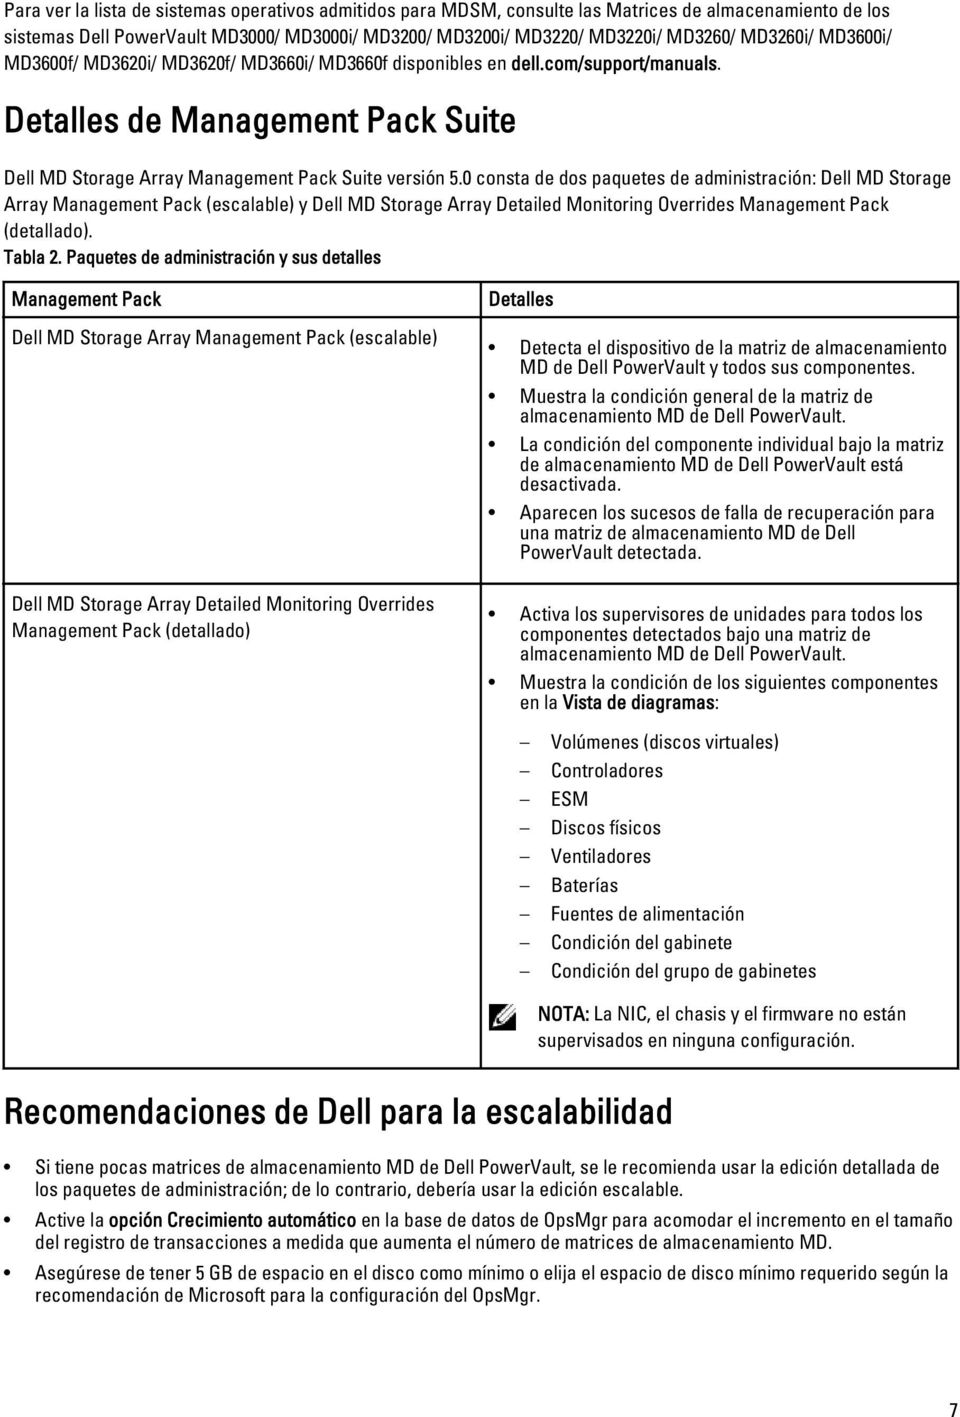 0 consta de dos paquetes de administración: Dell MD Storage Array Management Pack (escalable) y Dell MD Storage Array Detailed Monitoring Overrides Management Pack (detallado). Tabla 2.